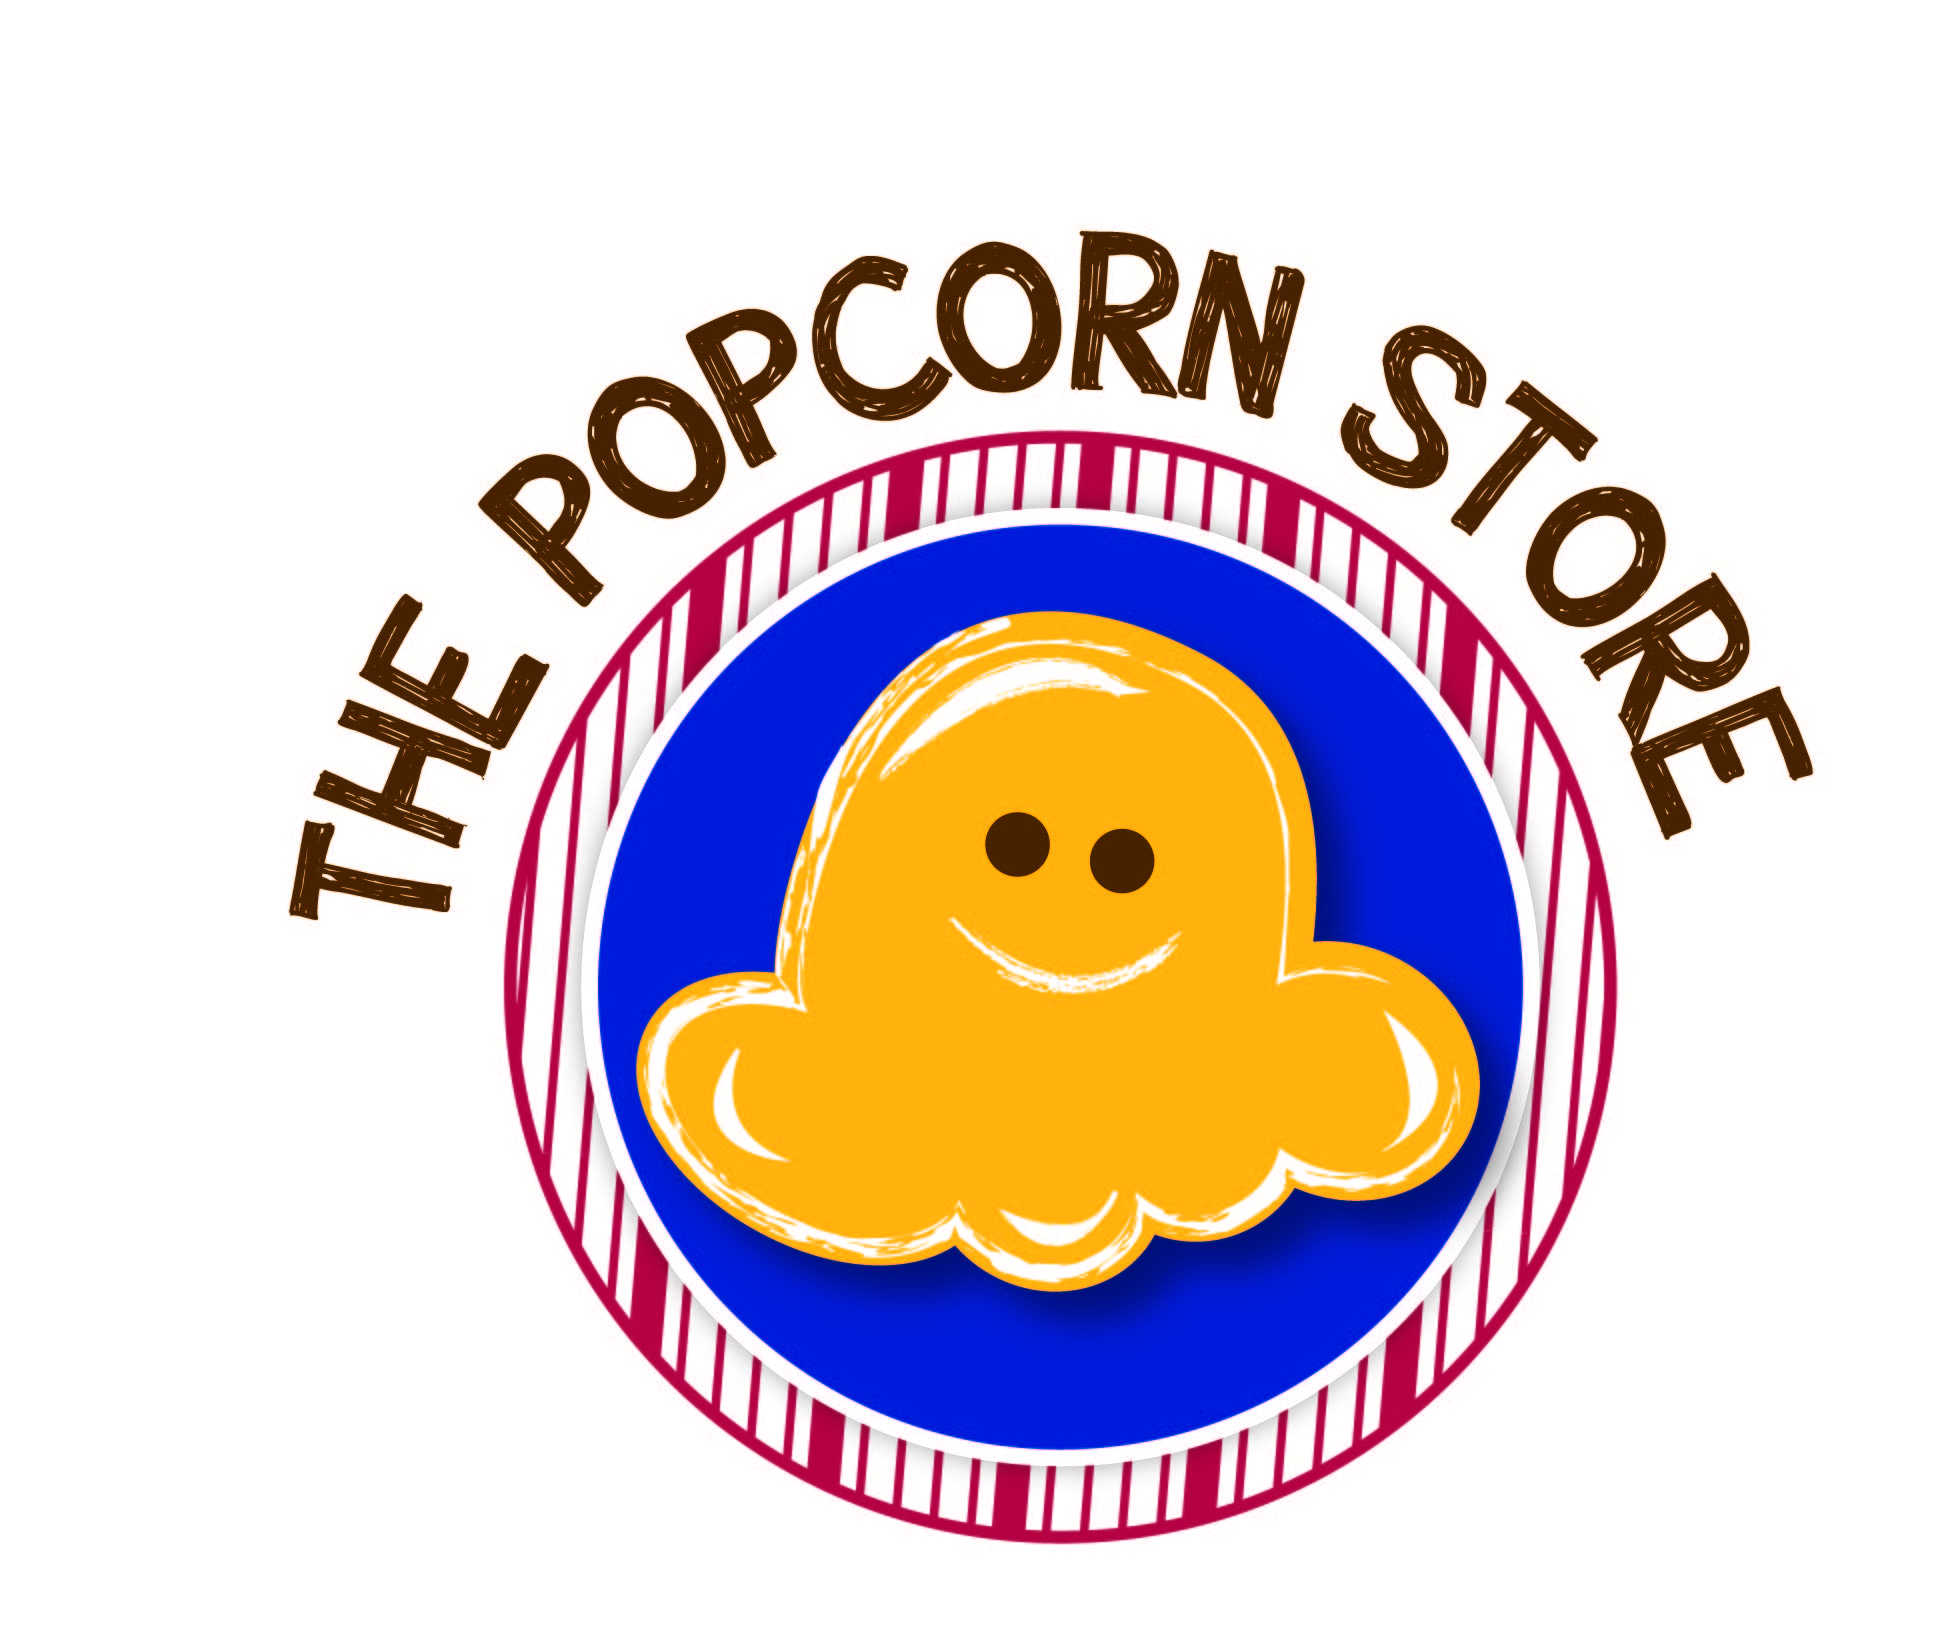 The Popcorn Store